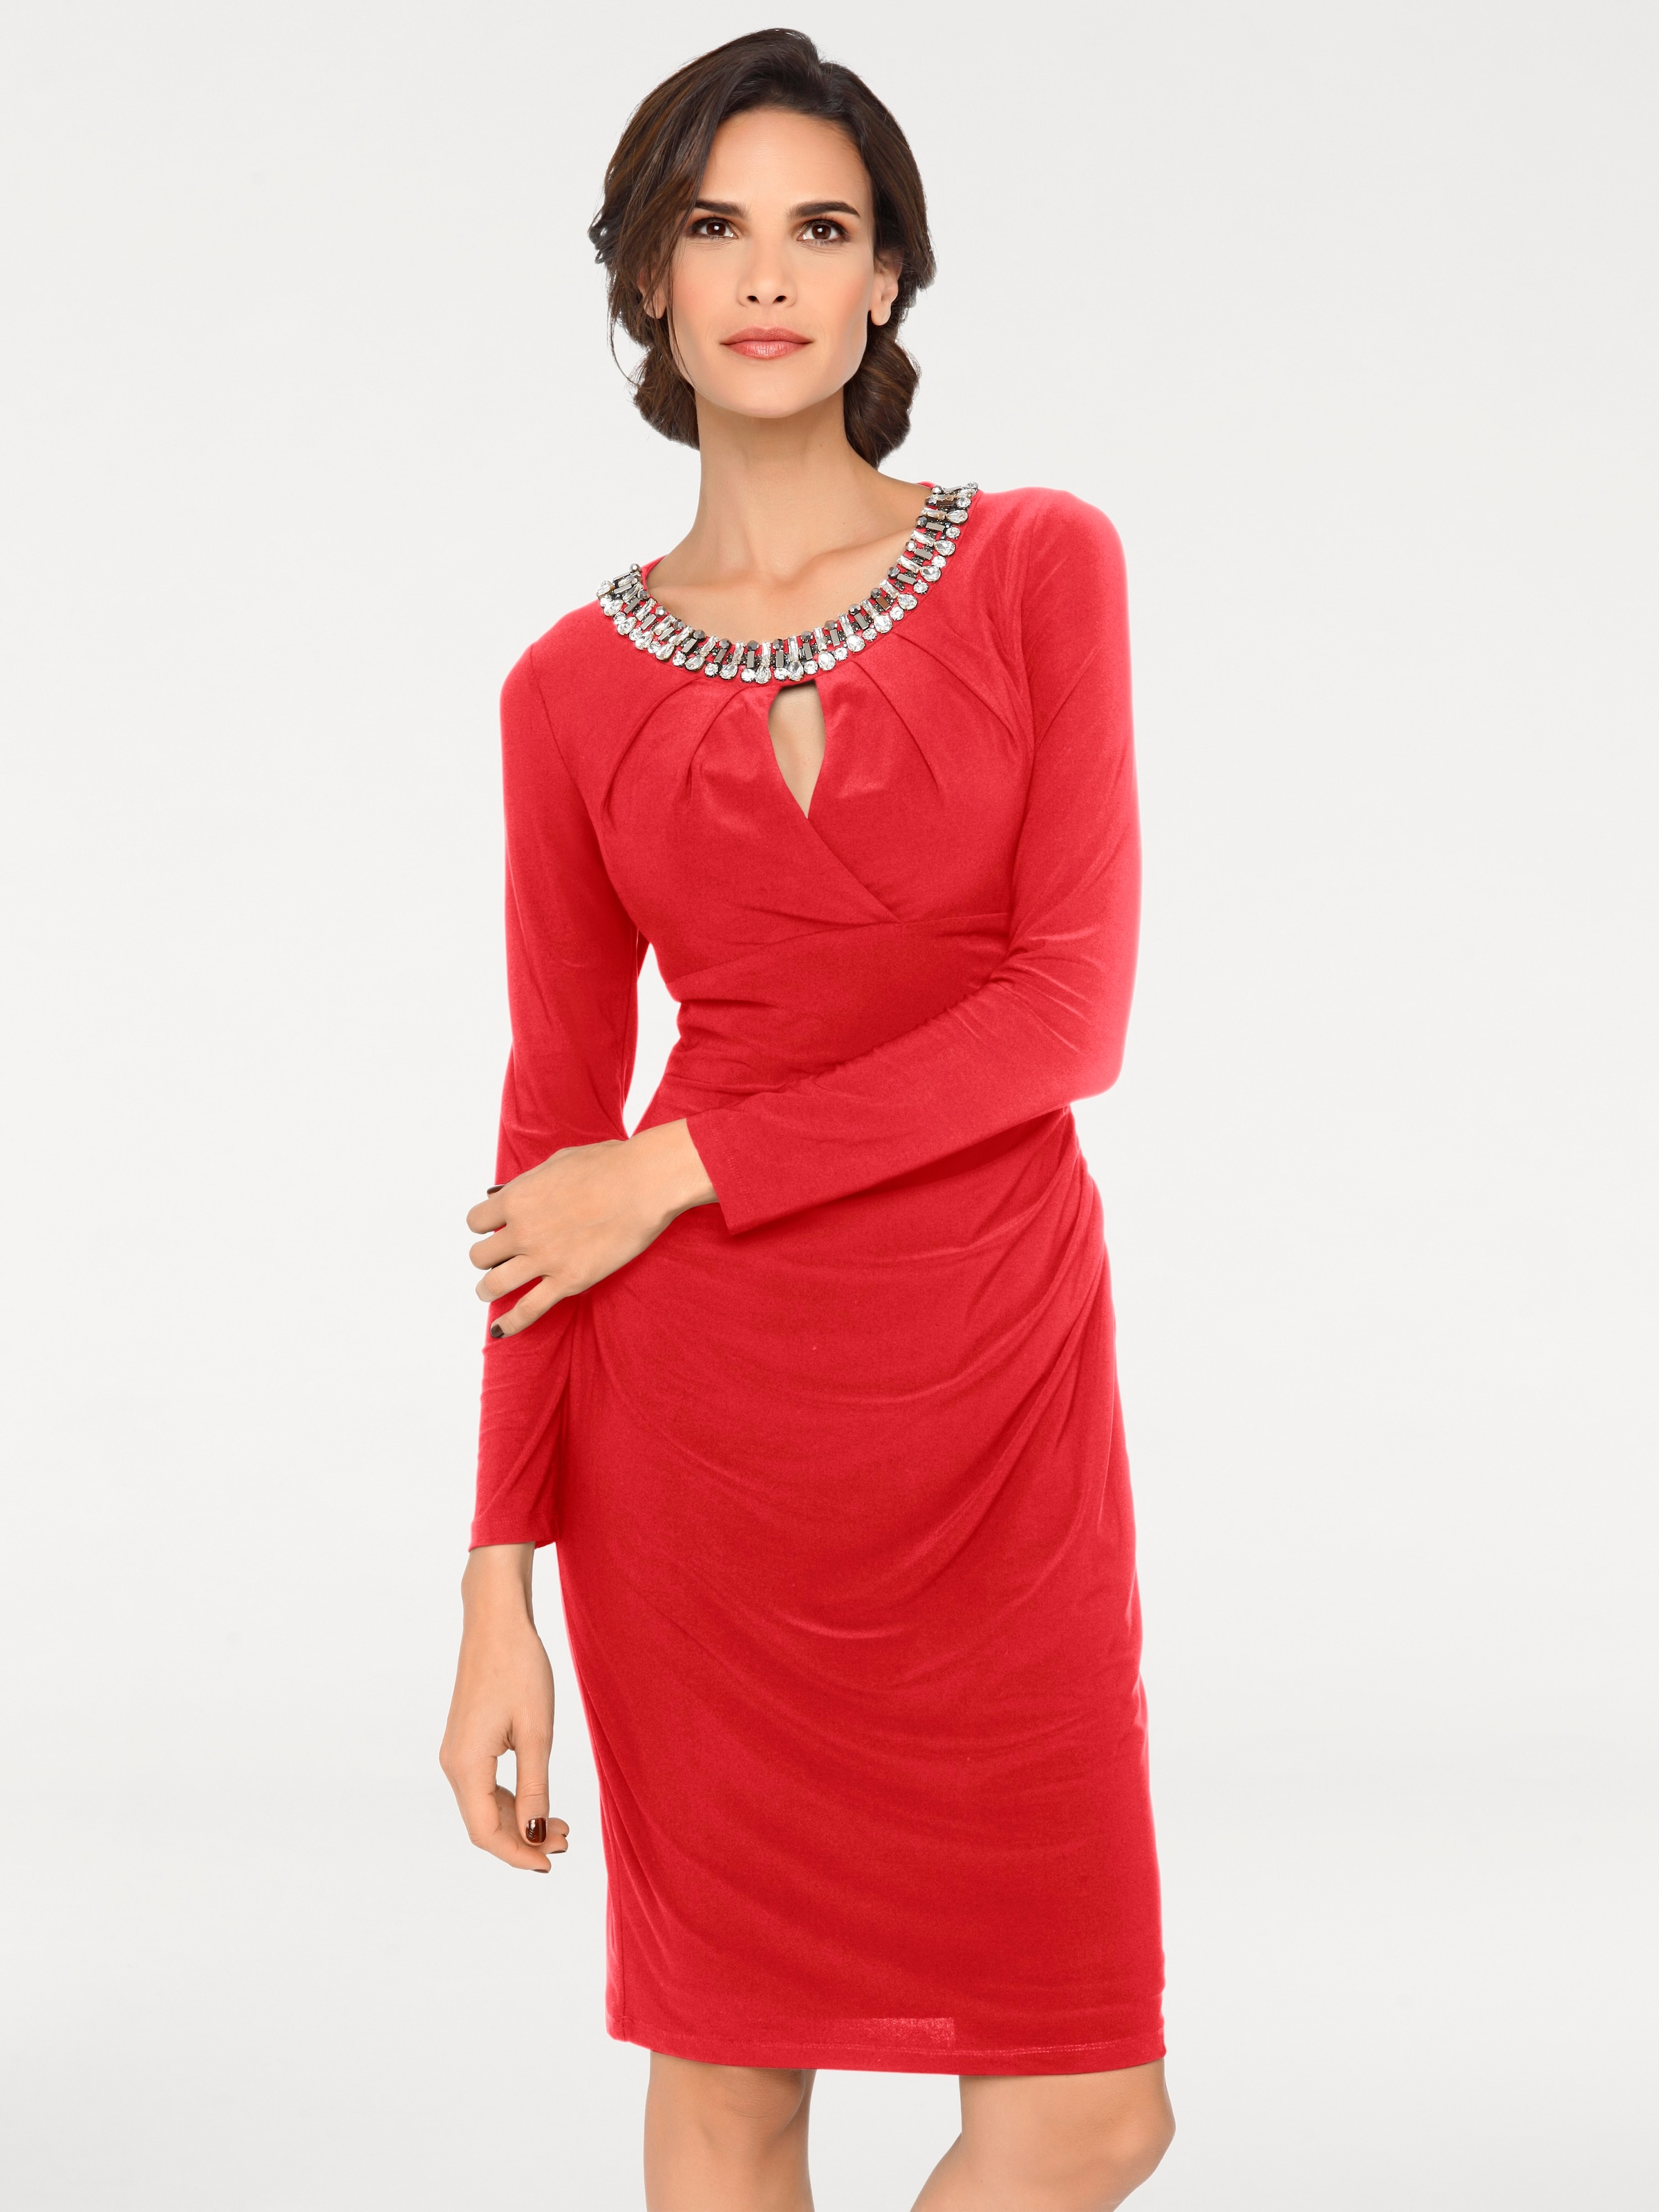 Heine En Rouge Robe Cocktail De myf6gvIbY7